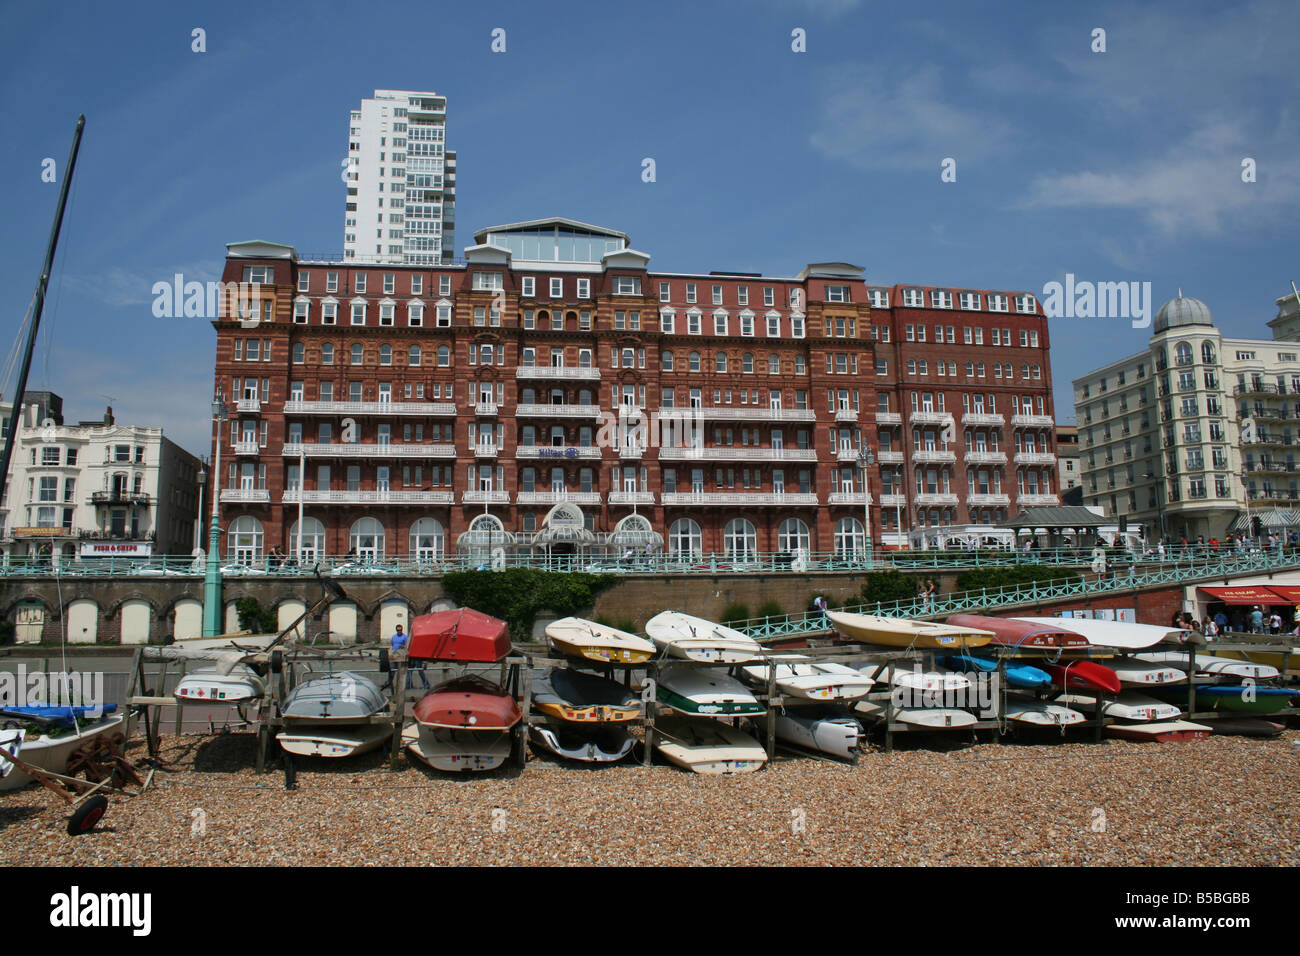 Hotel Metropole on the Seafront in Brighton. - Stock Image